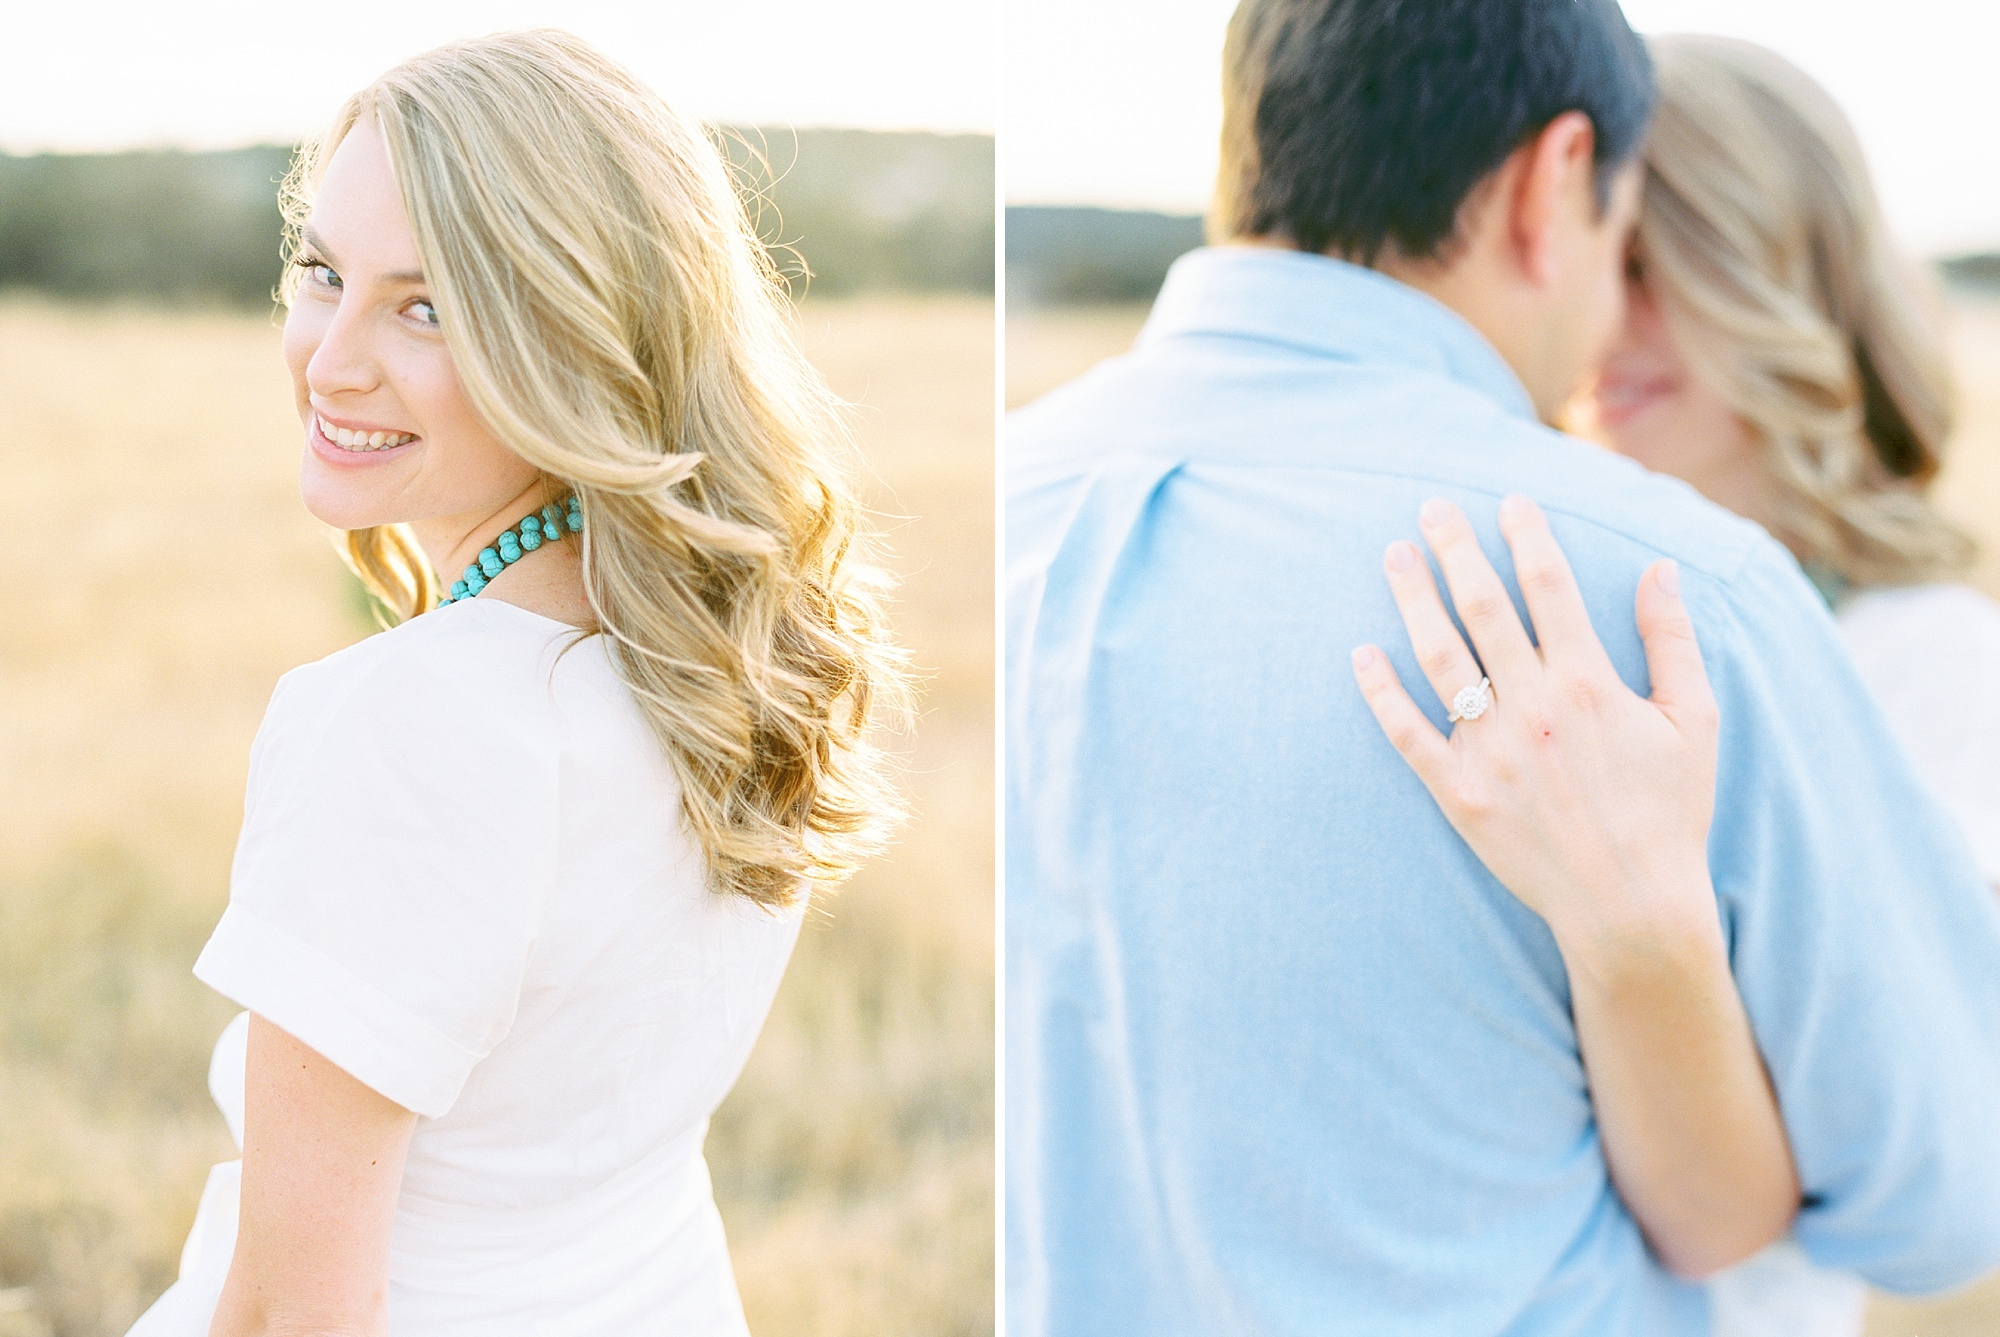 Golden Hills Engagement Session - Film Engagement Session - Ashley Baumgartner - Sacramento Wedding Photography - Stone Barn Ranch Wedding Couple_0018.jpg